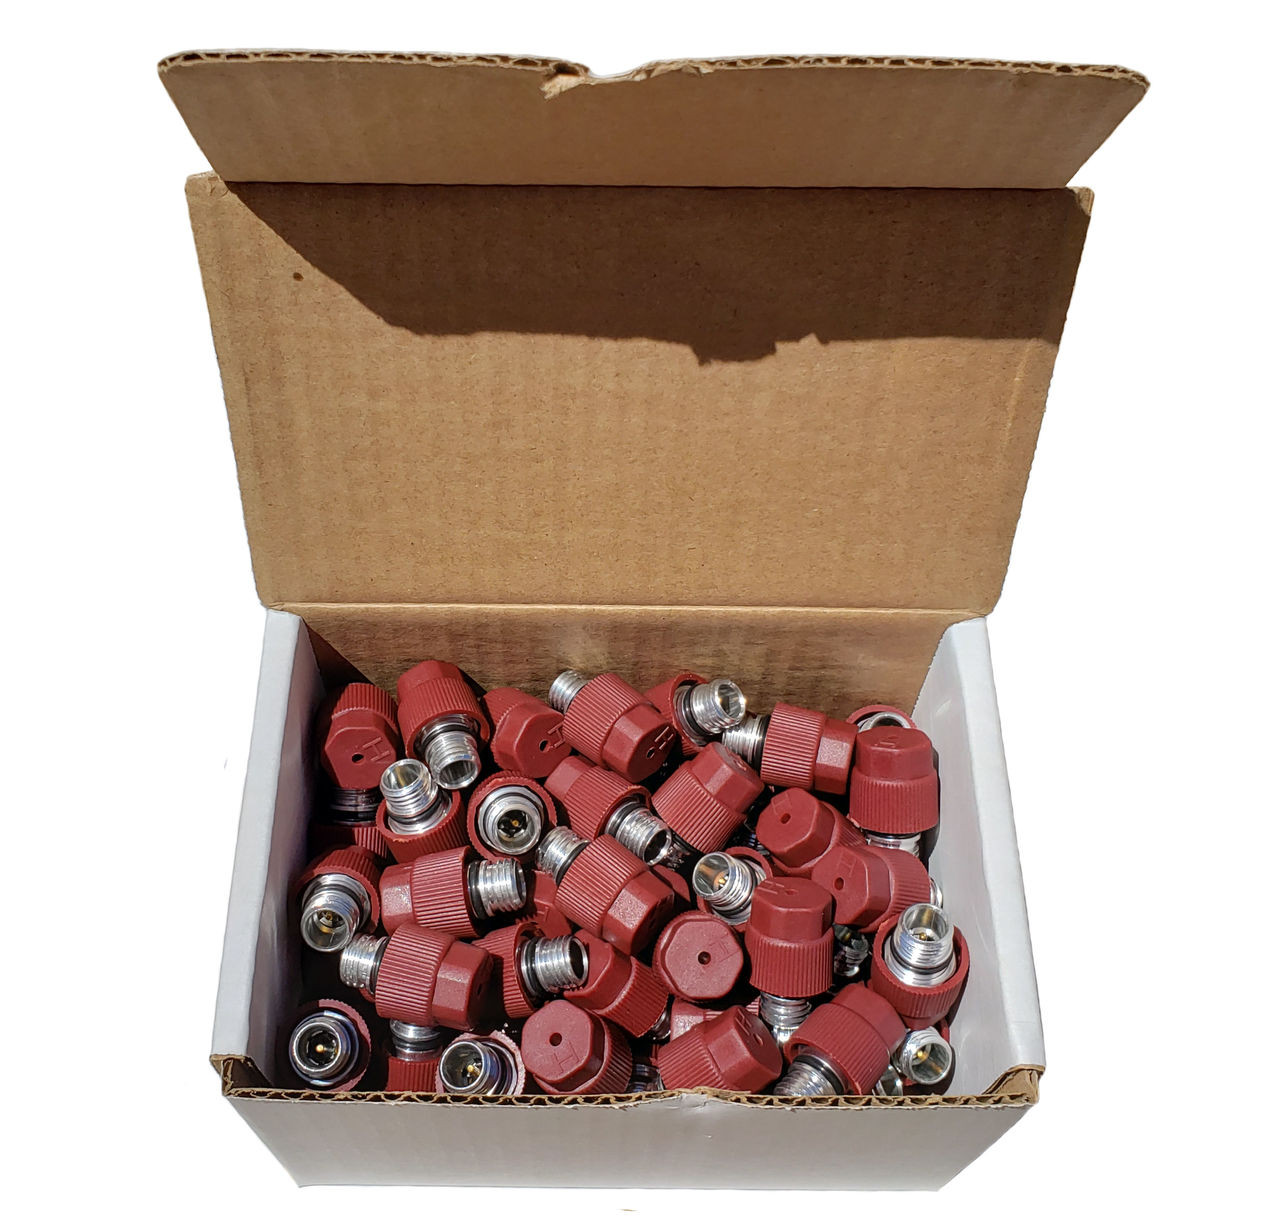 100 Pack High Side Service Ports - Interchange 15-32567, 15-5438, 52458184, 59946, MT0105